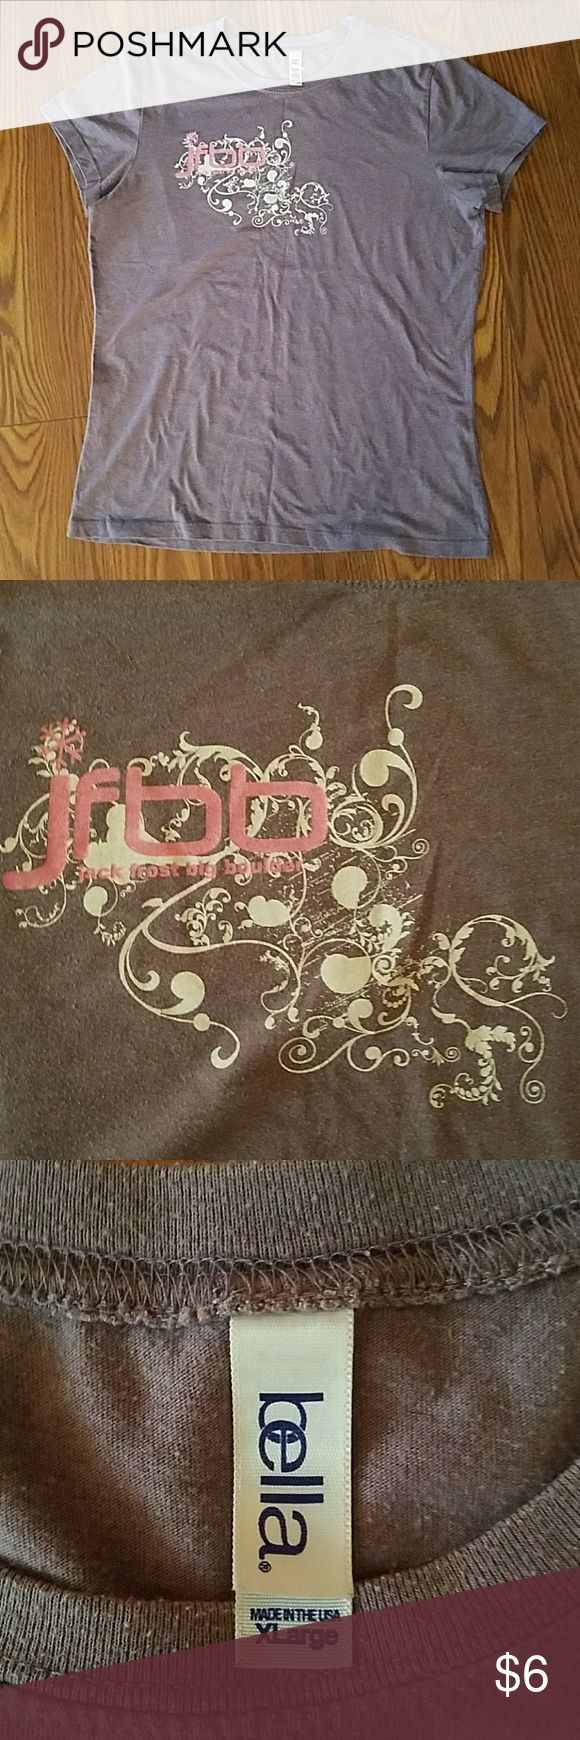 Ladies top Bella T shirt, ladies, light purple color, size xl, JFBB logo,  (Jack frost, Big Boulder ski area in Pocono mt). Made in the USA! Cotton polyester fabric. Bella Tops Tees - Short Sleeve